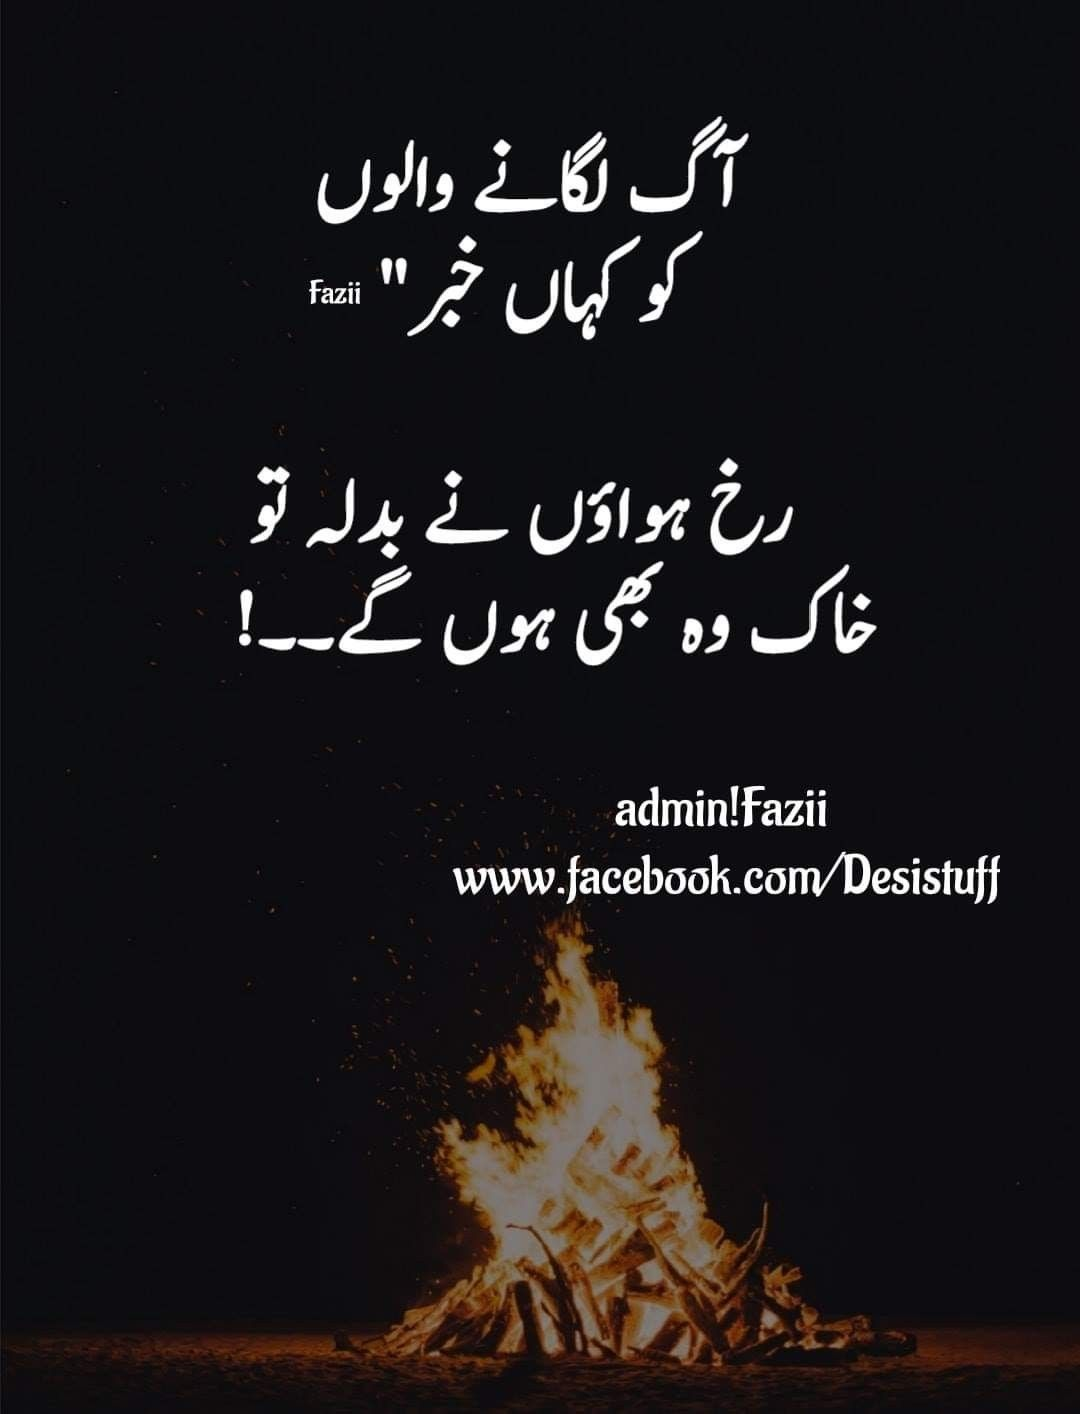 BakhtawerBokhari  Urdu funny quotes, Poetry quotes in urdu